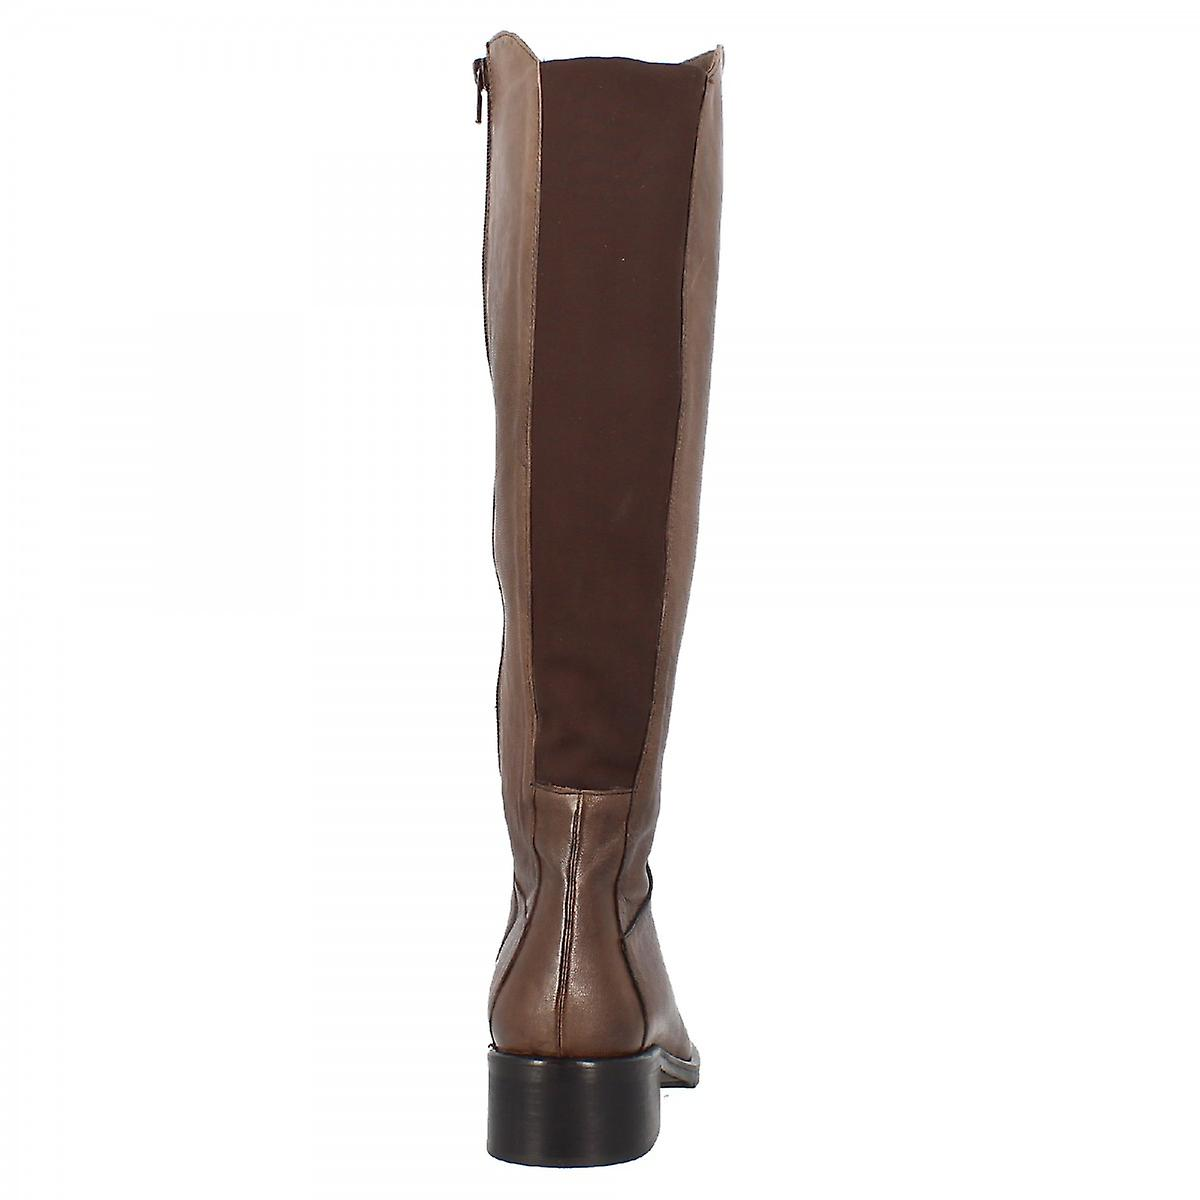 Leonardo Shoes Women's handmade knee kigh boots with squared heel in dark brown calf leather